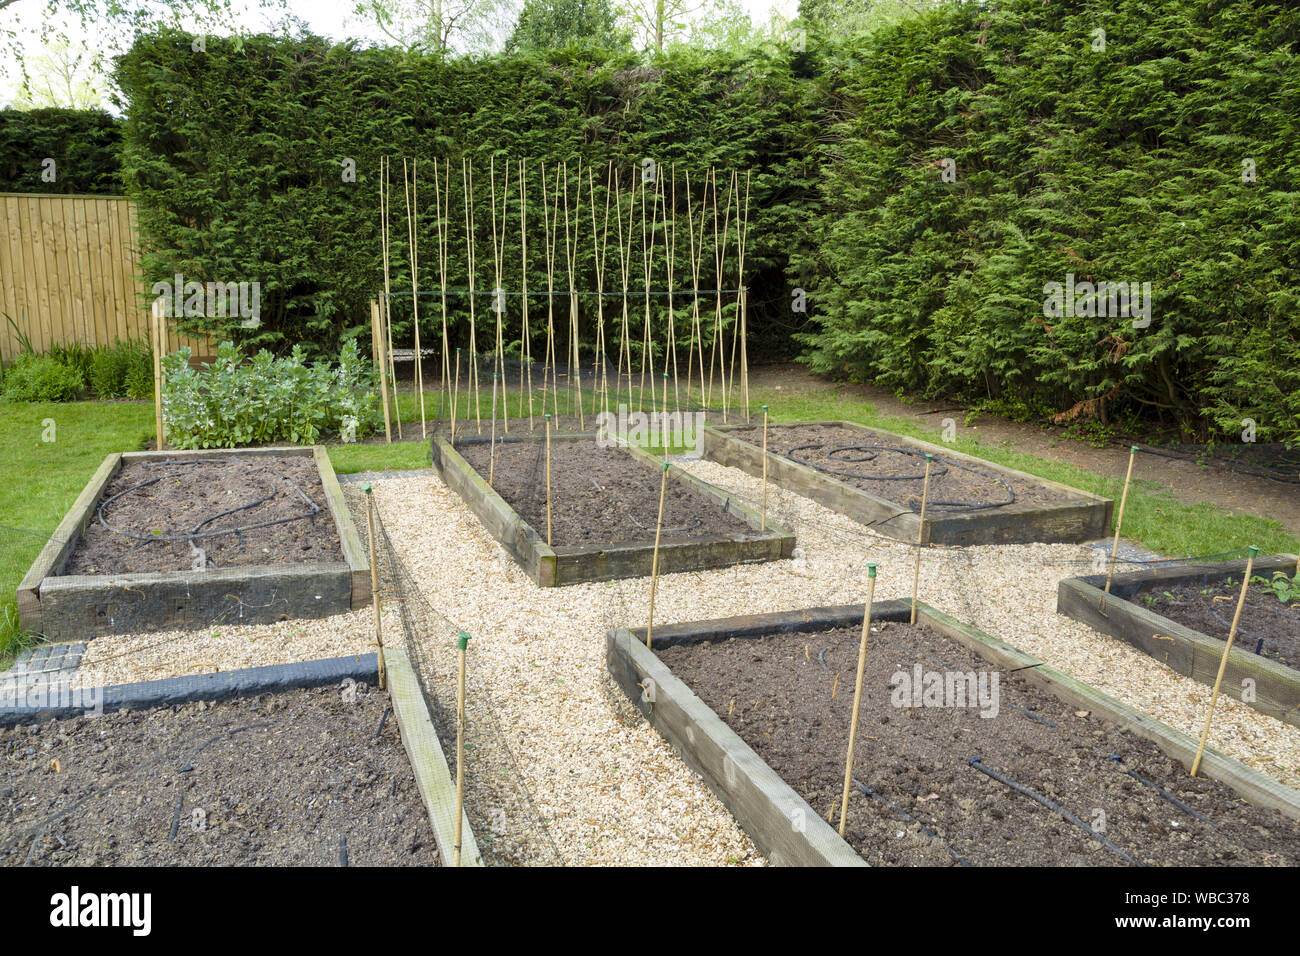 Planning And Making A New Vegetable Garden With Raised Beds Stock